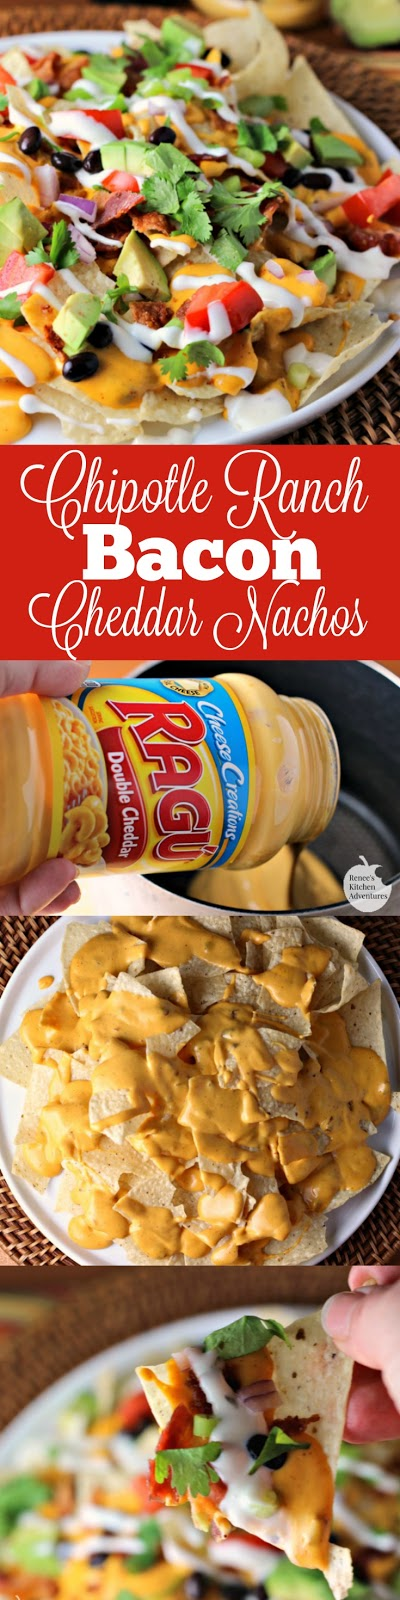 Chipotle Ranch Bacon Cheddar Nachos   by Renee's Kitchen Adventures - A fun and easy recipe for cheesy nachos great for entertaining or a fun family meal! A bacon and cheddar lovers treat! #simmeredintradition